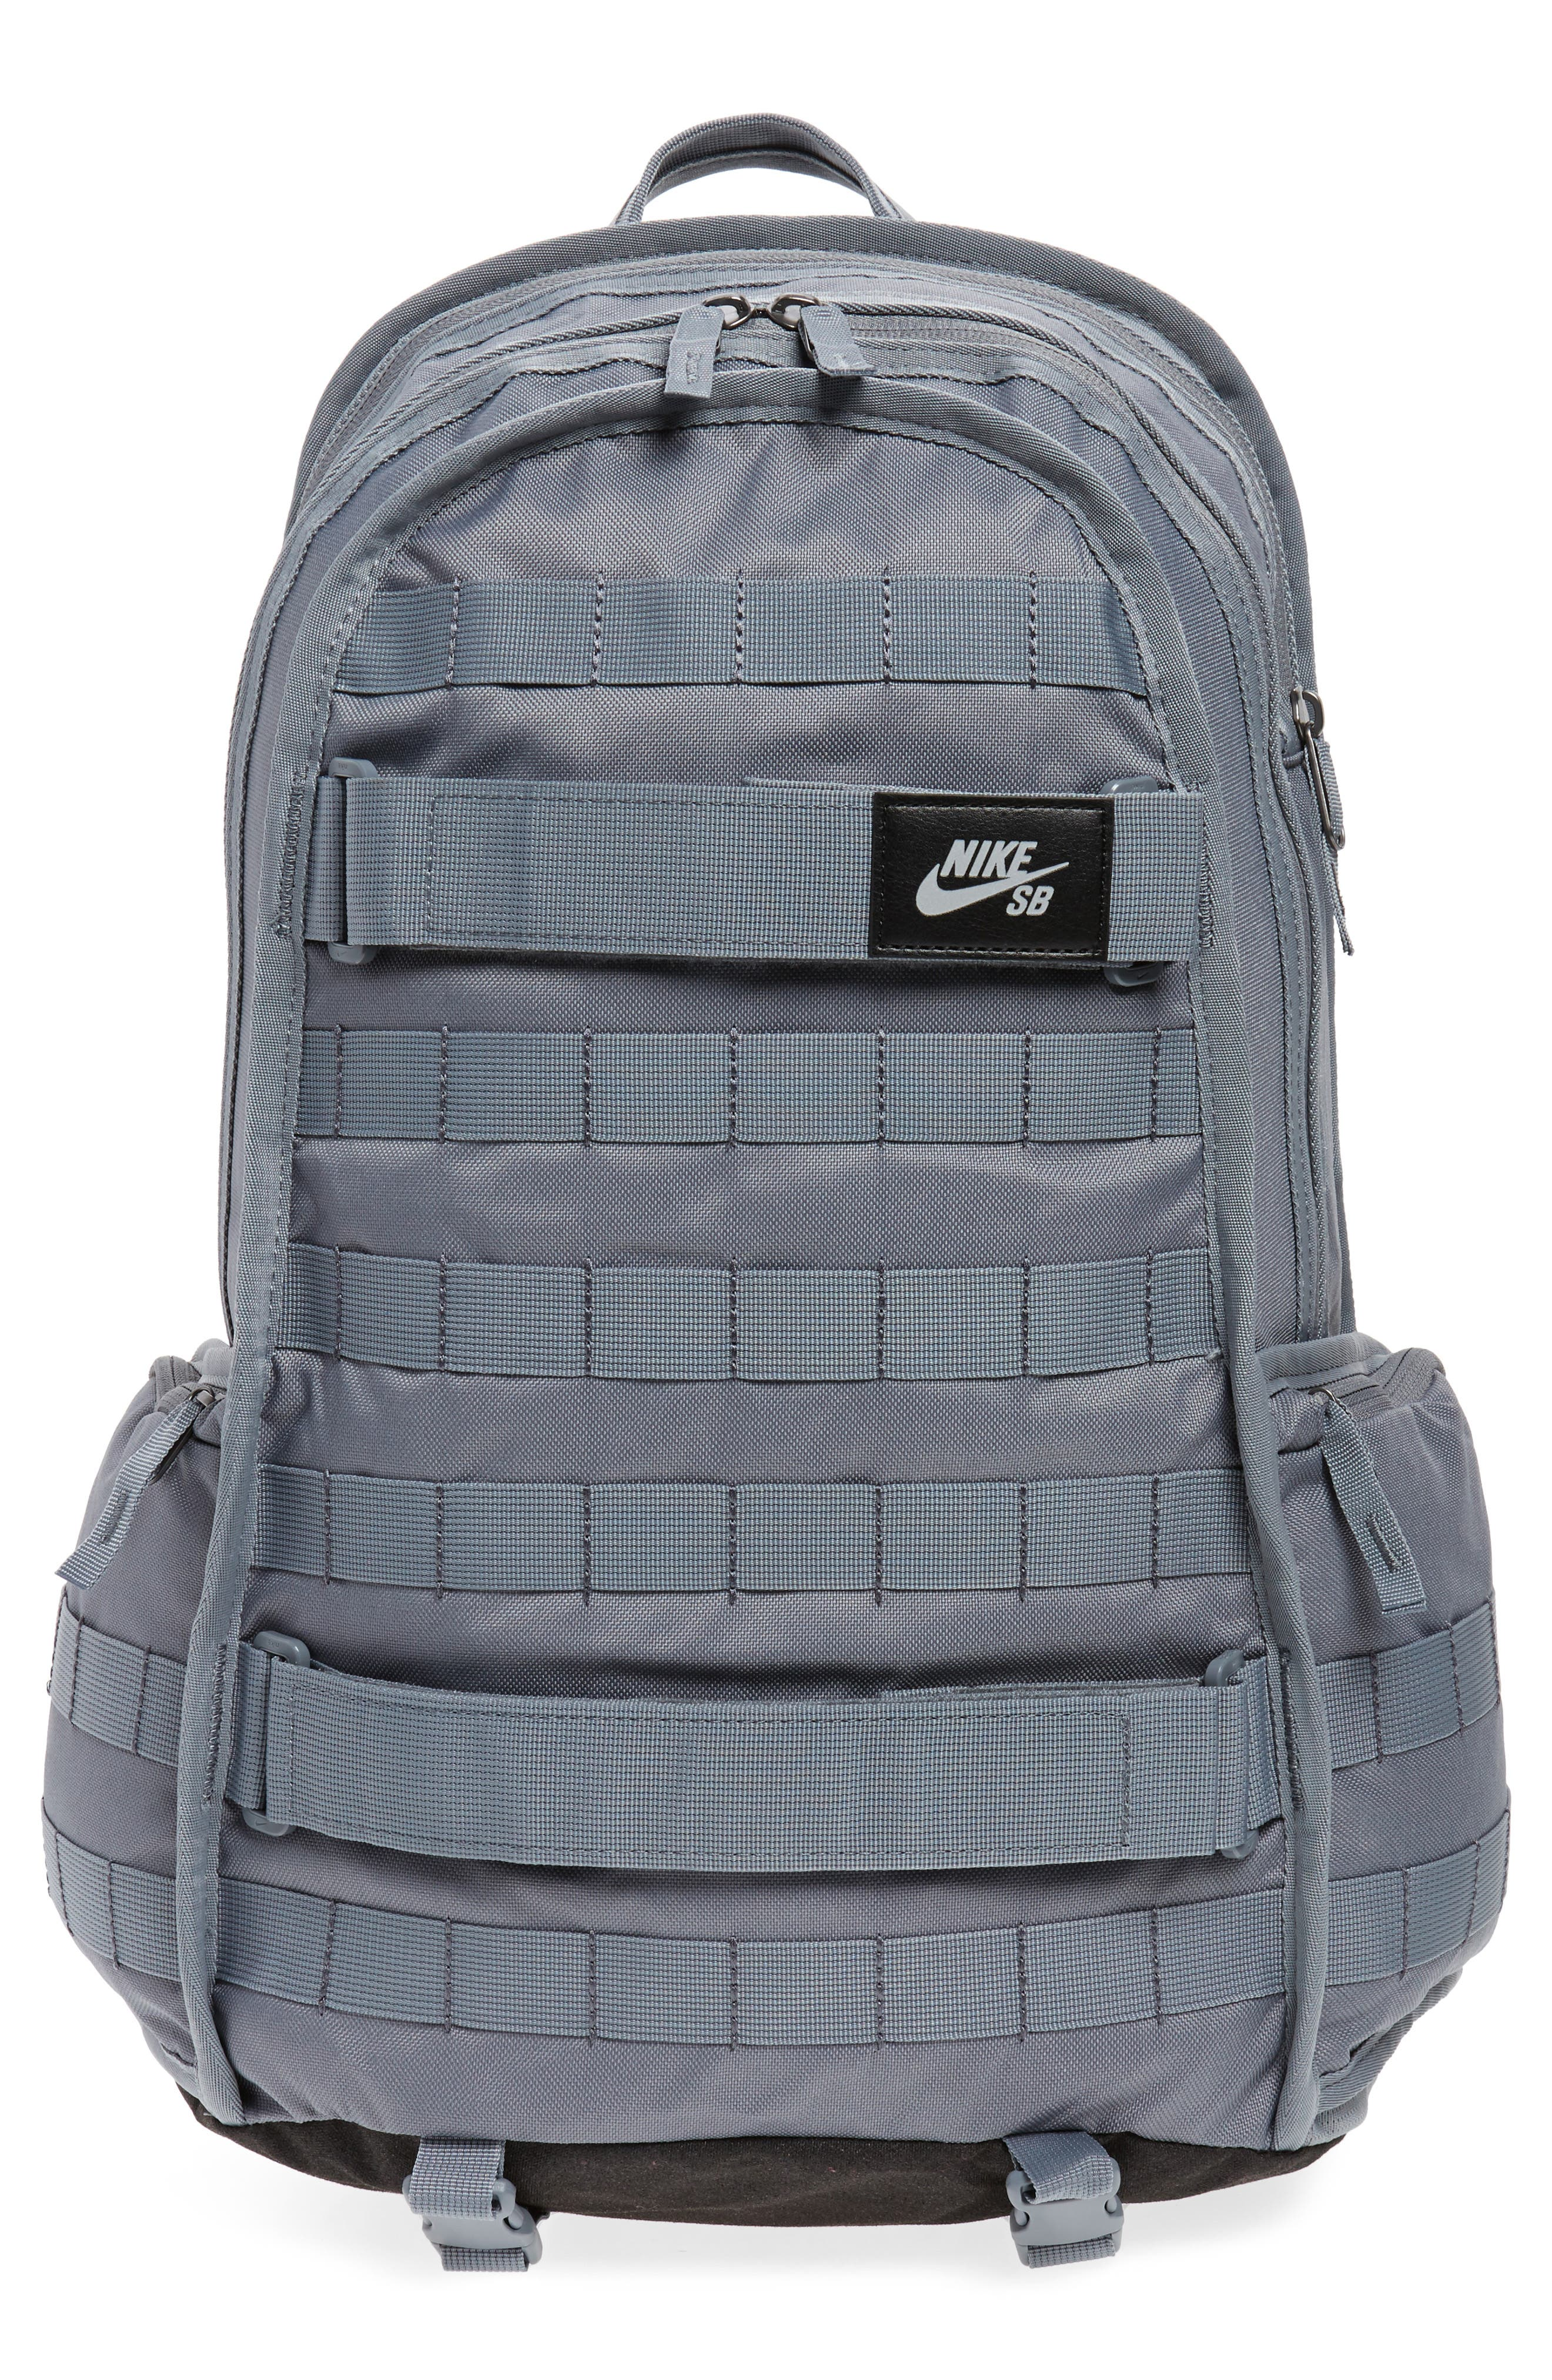 RPM Backpack,                             Main thumbnail 1, color,                             Cool Grey/ Black/ Black